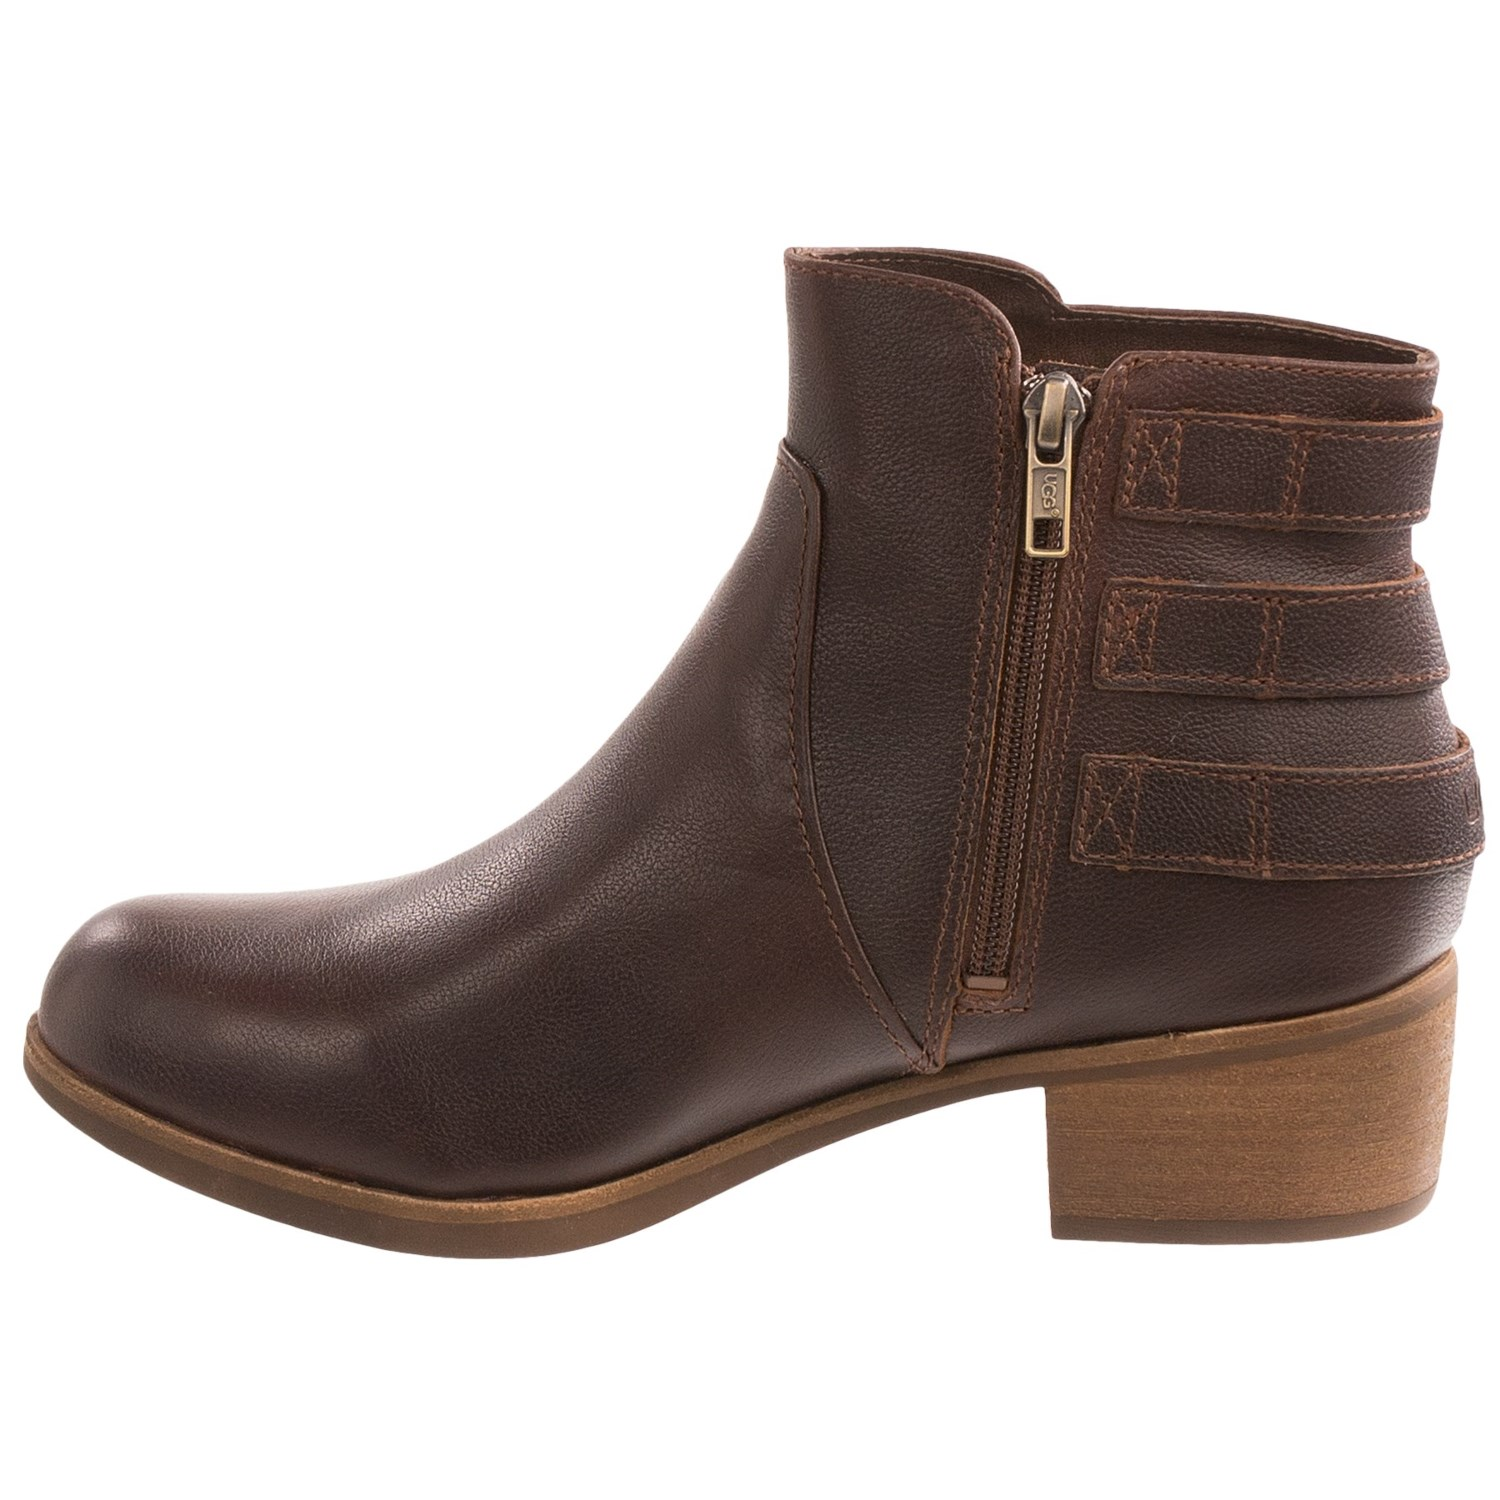 ugg australia volta leather ankle boots